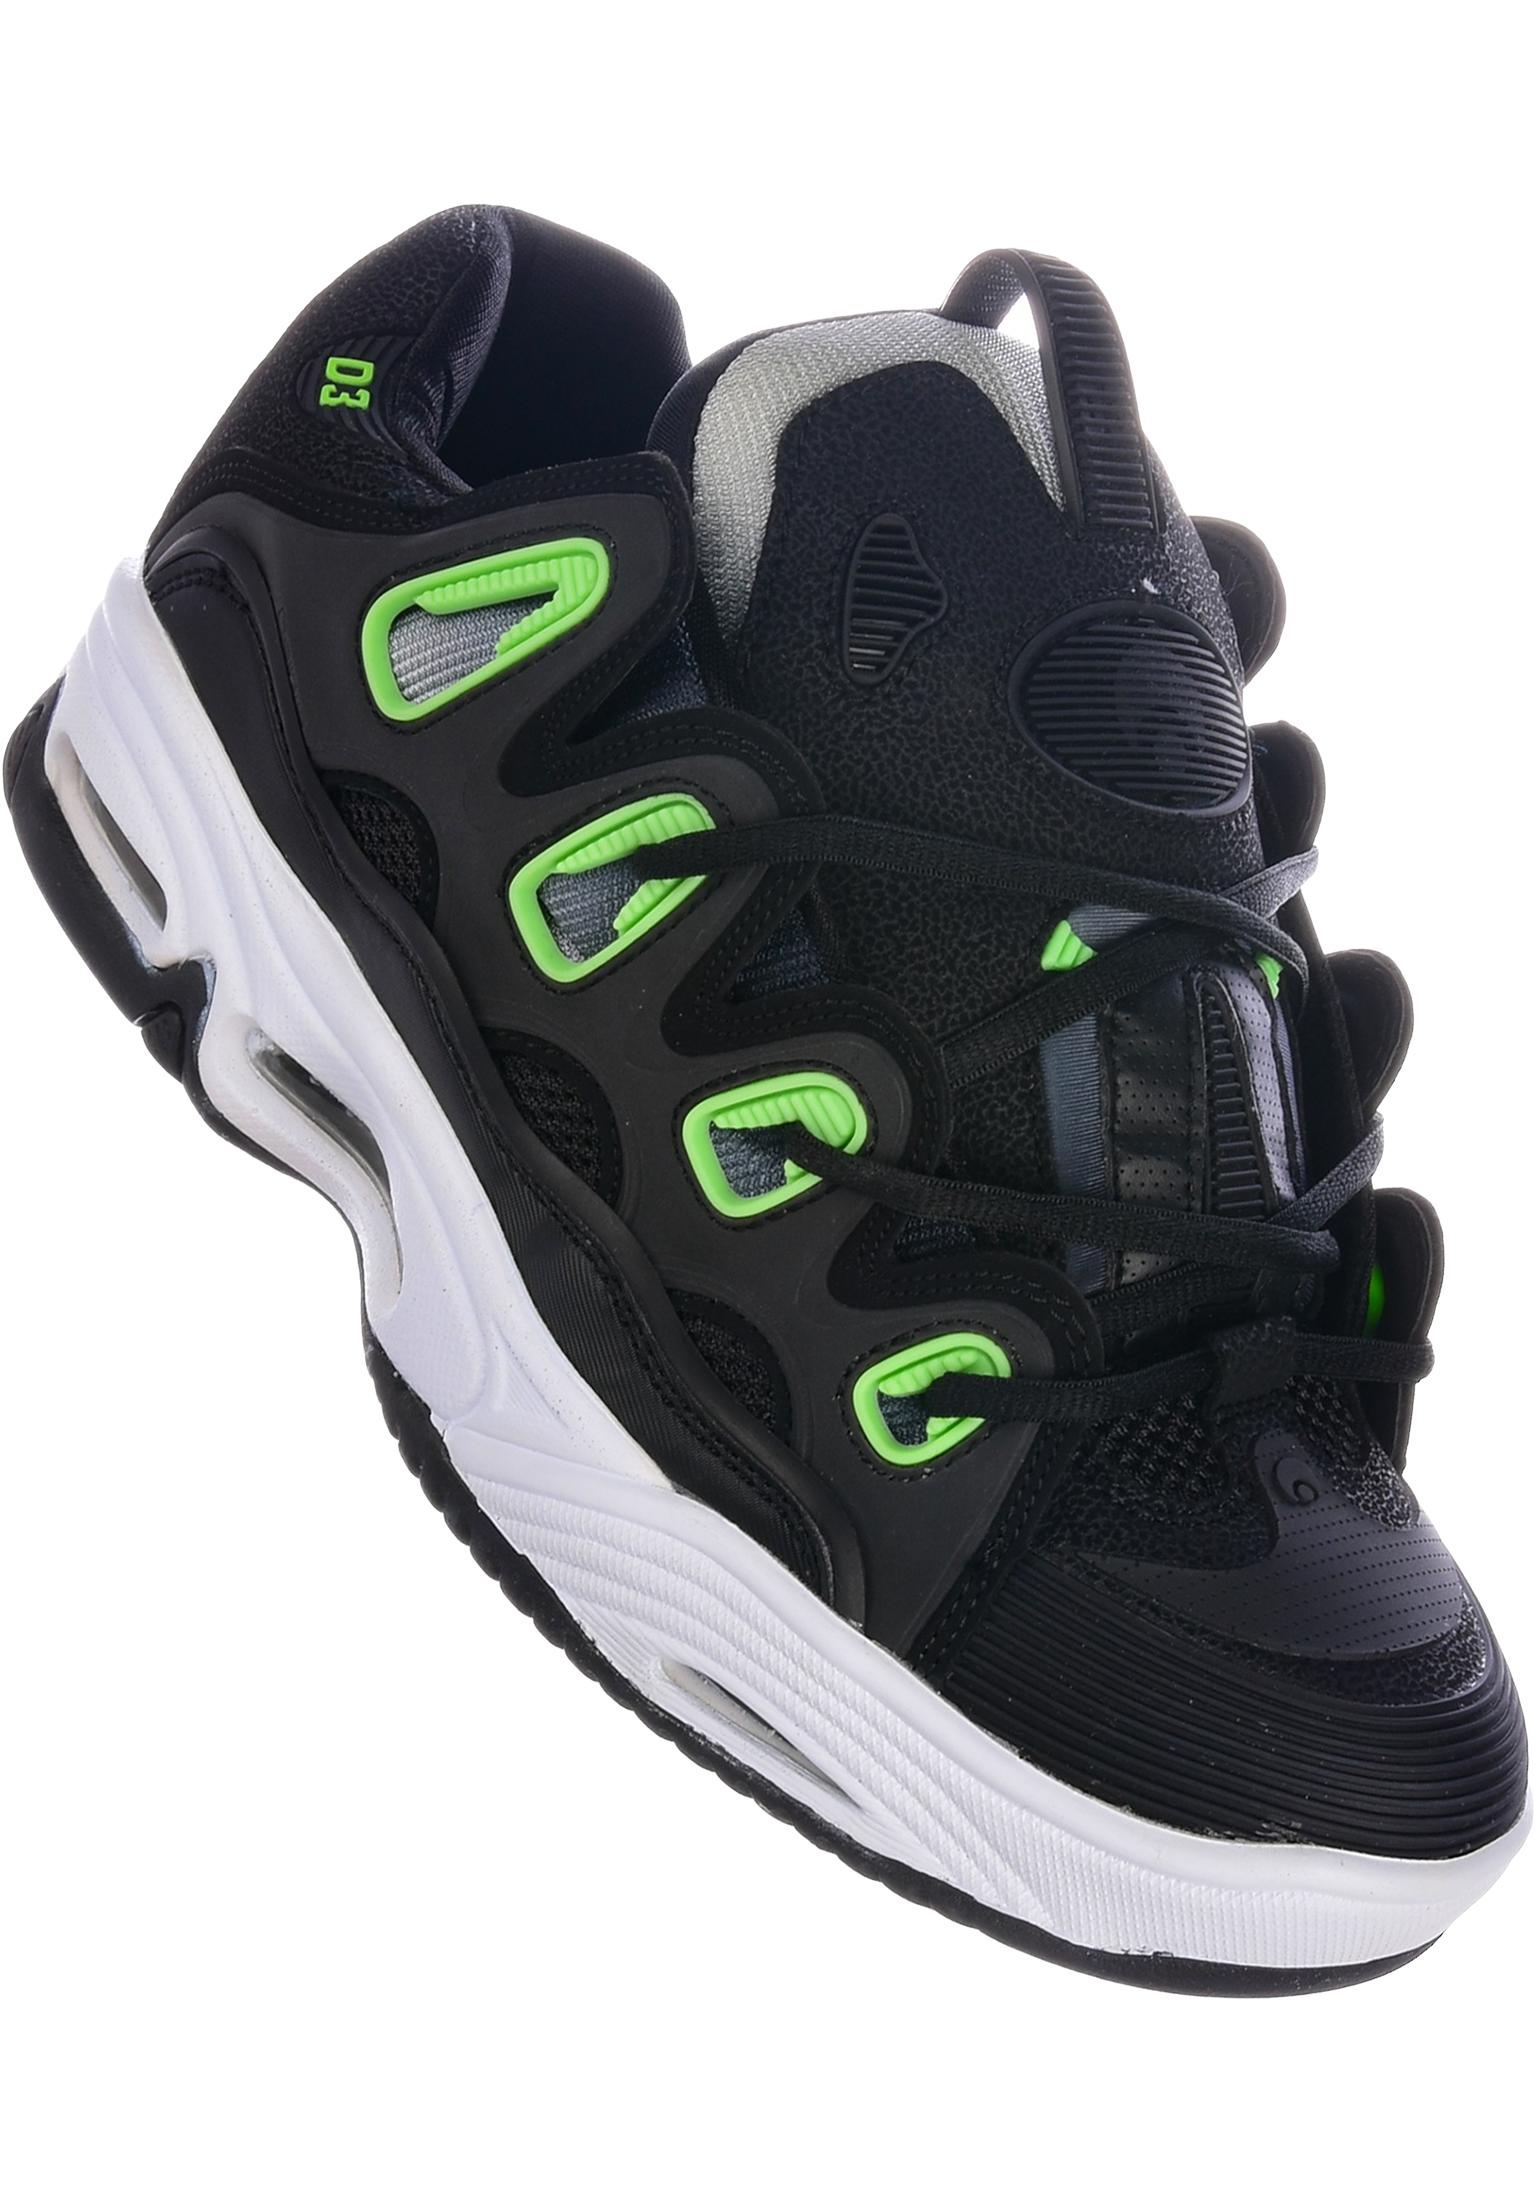 a7f9c246c1c D3 2001 Osiris All Shoes in black-white-green for Men | Titus